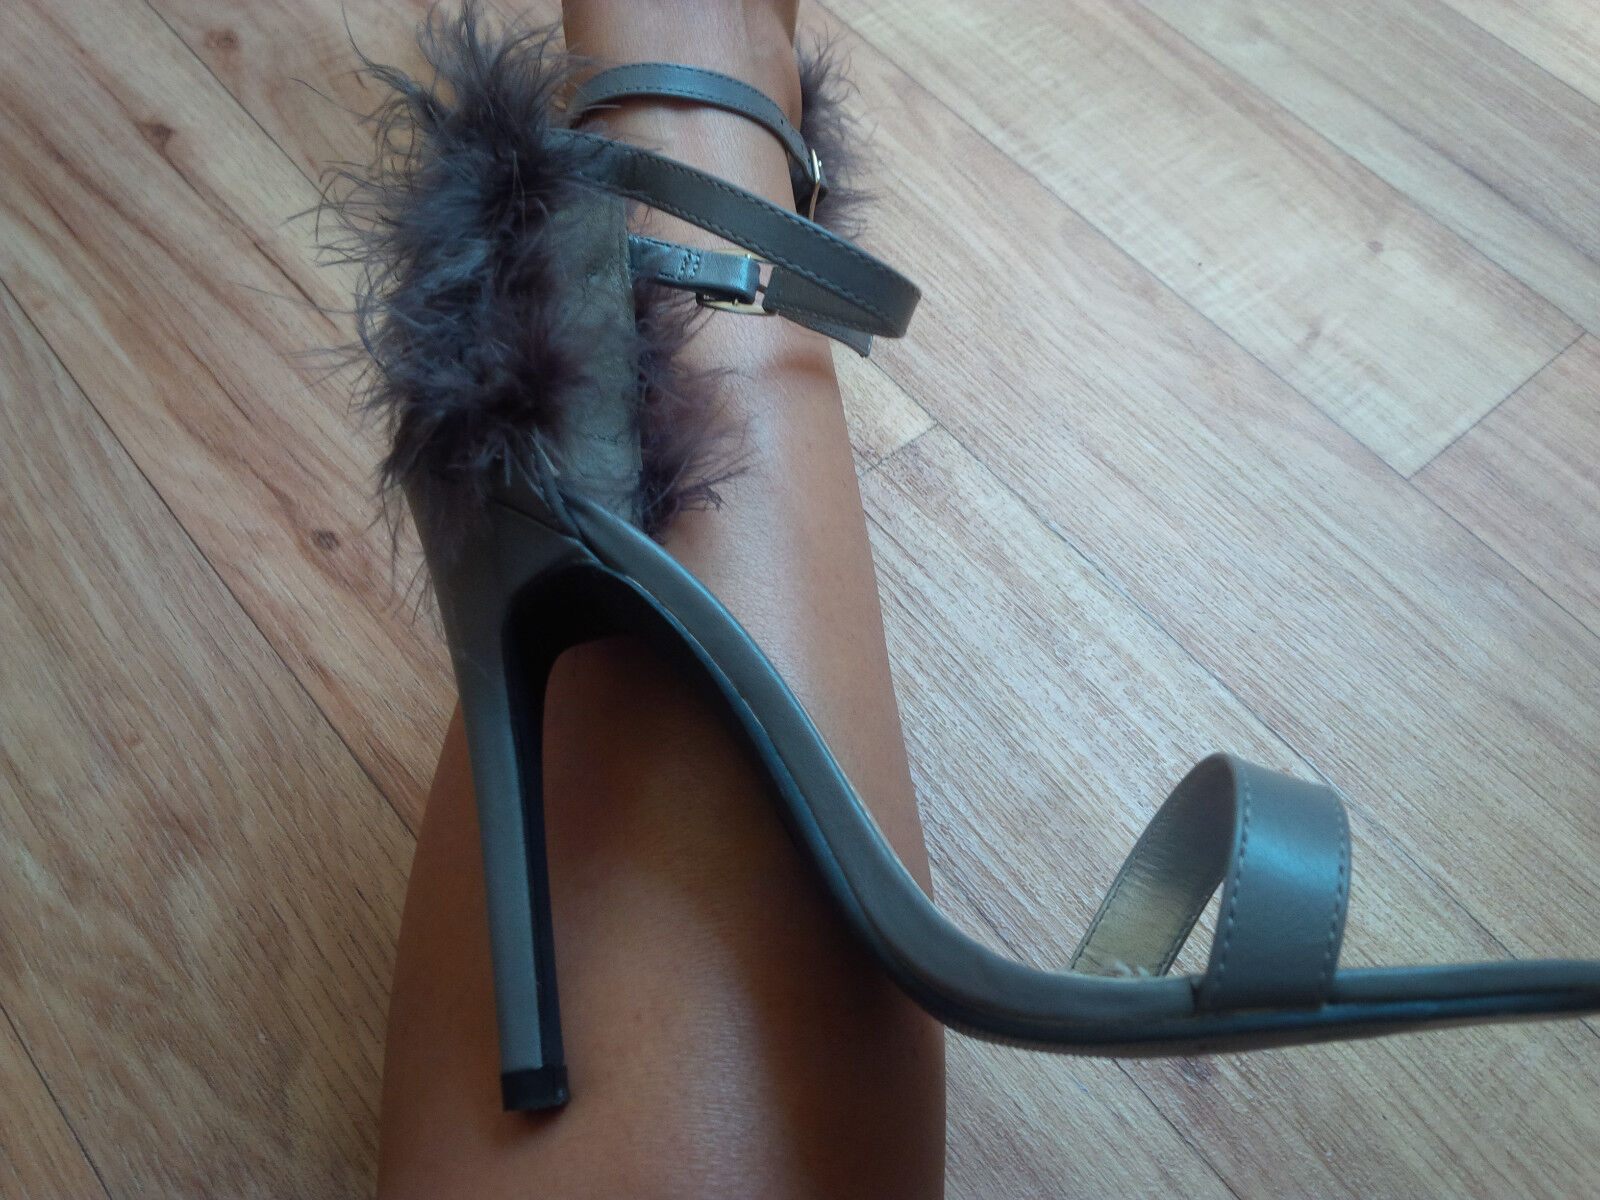 Grau Grau Grau Faux Fur Barely There Heels by Boohoo UK5 EU38 - Boxed with Dust Bags 36ce72